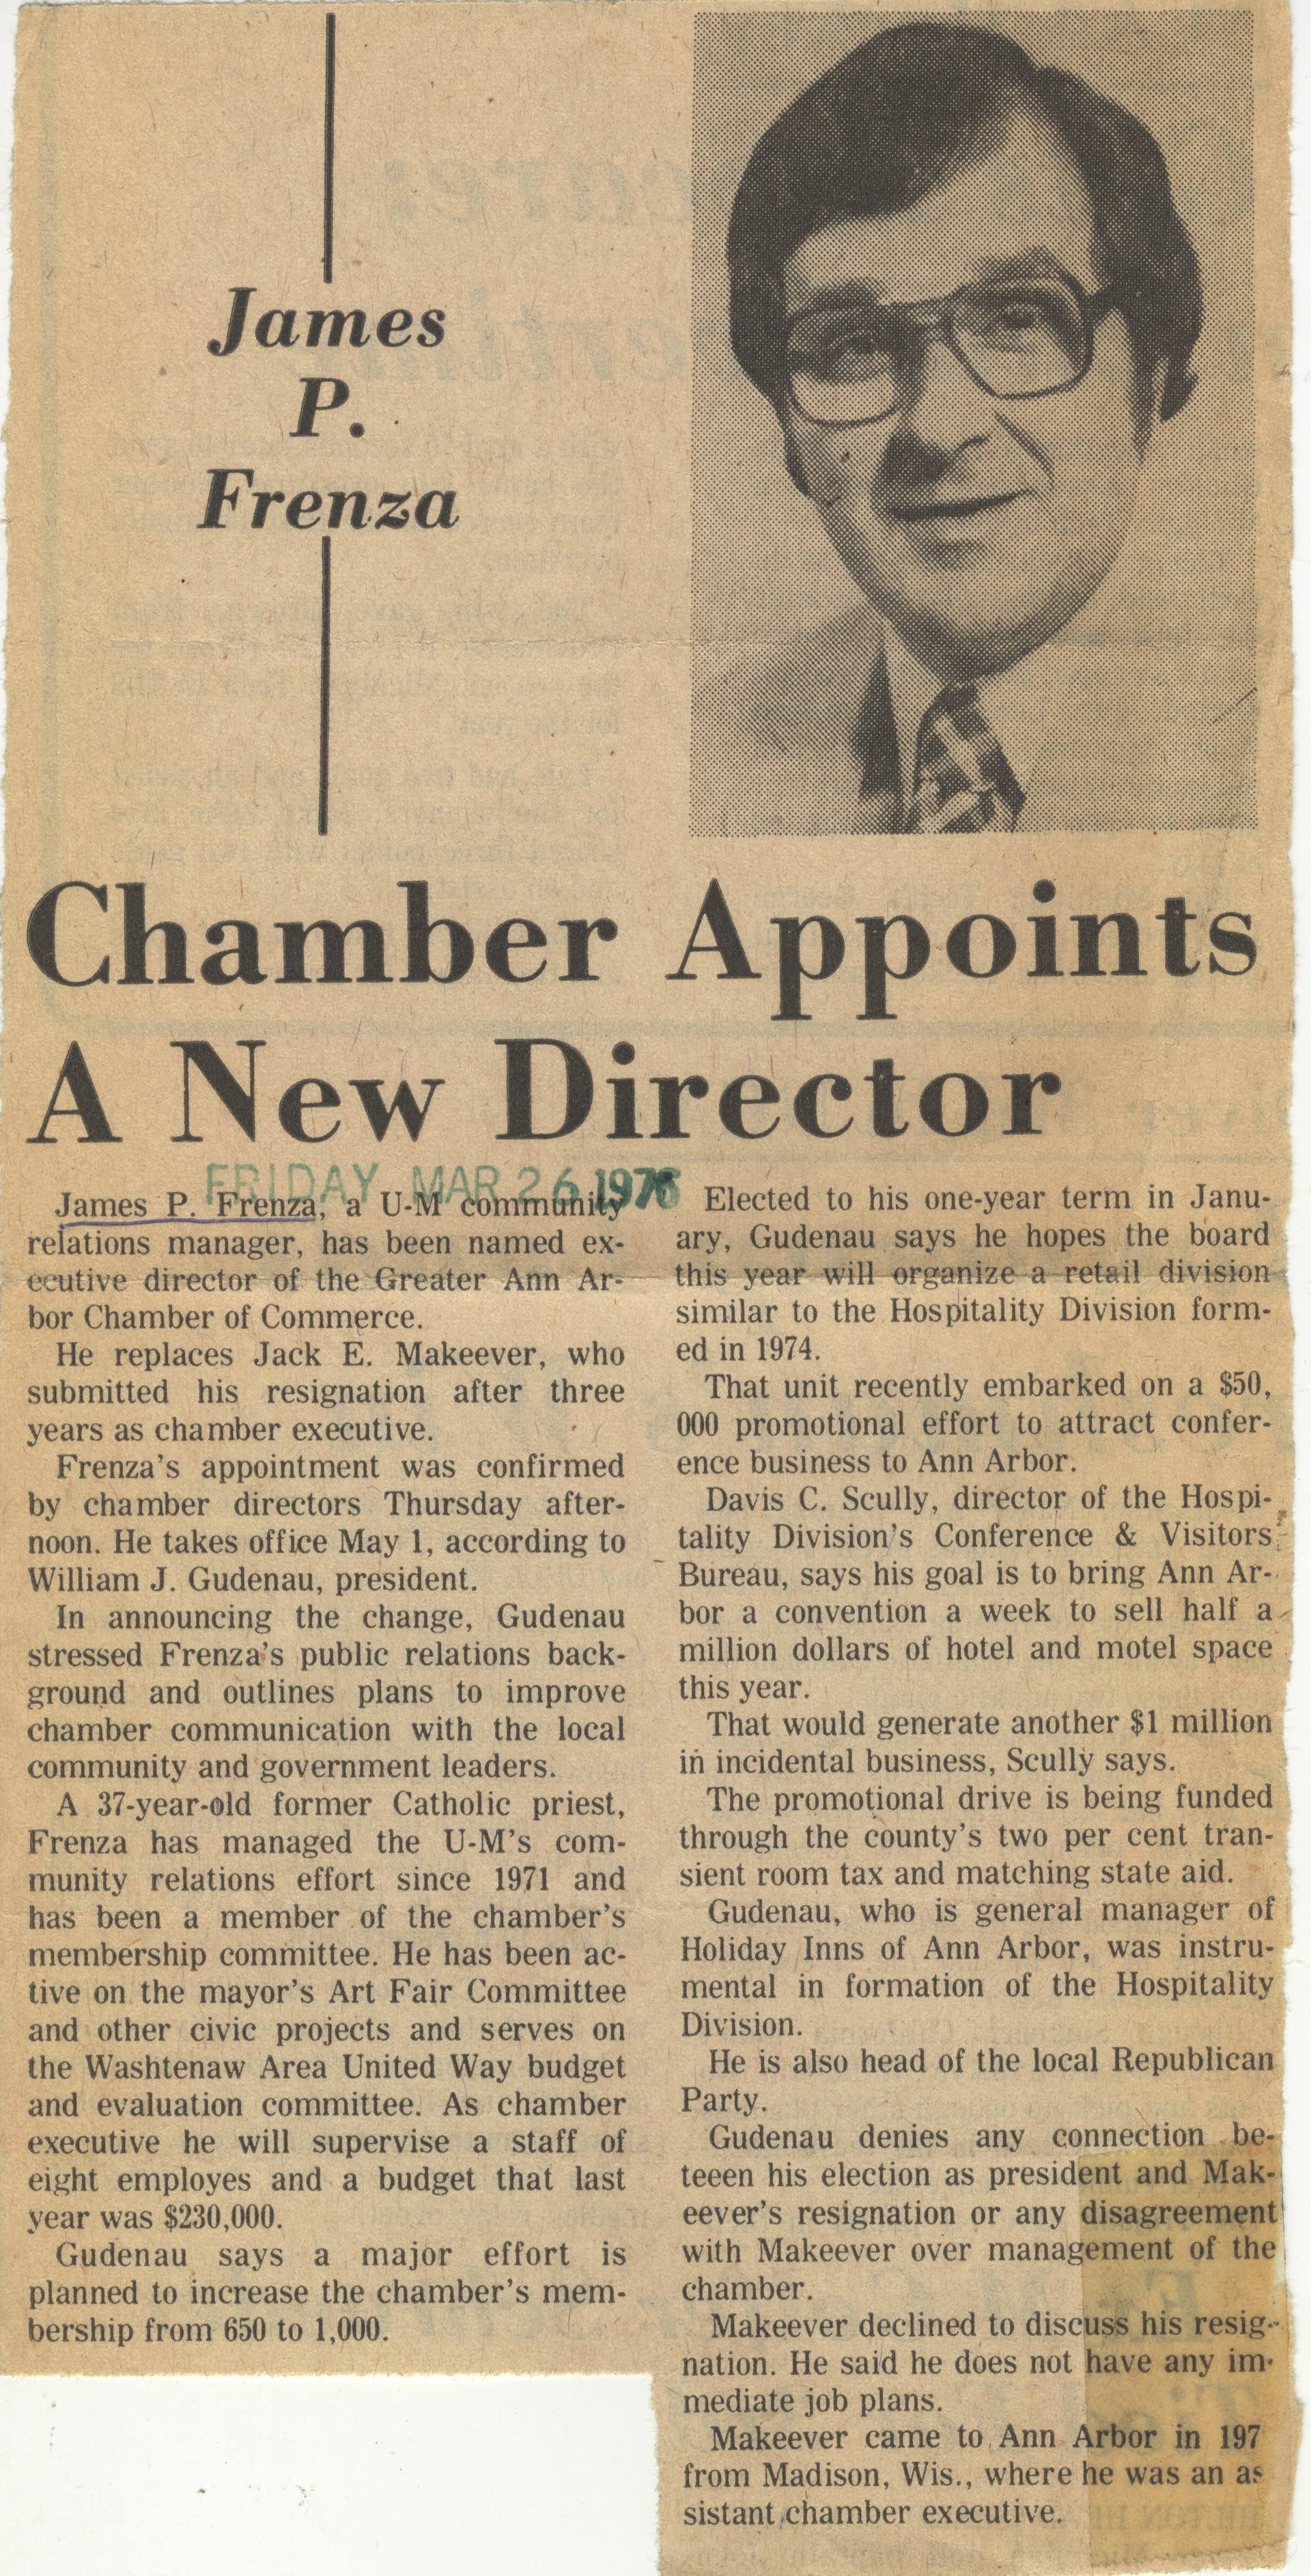 Chamber Appoints A New Director image